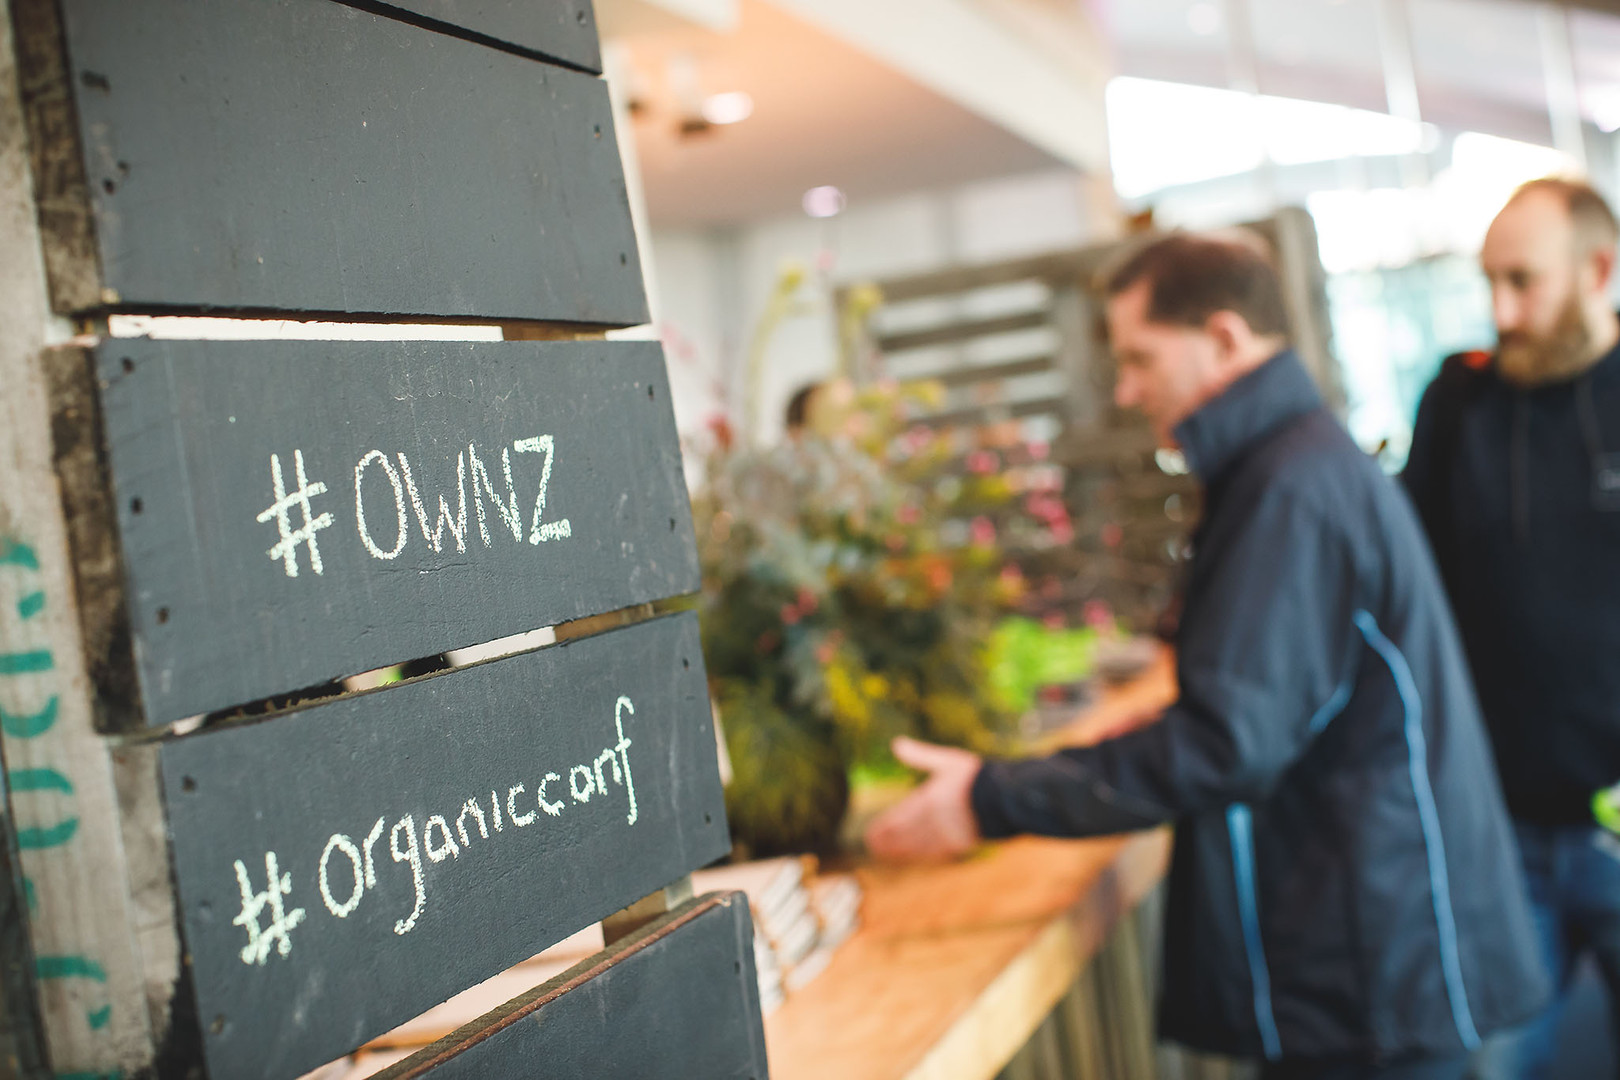 The OWNZ conference